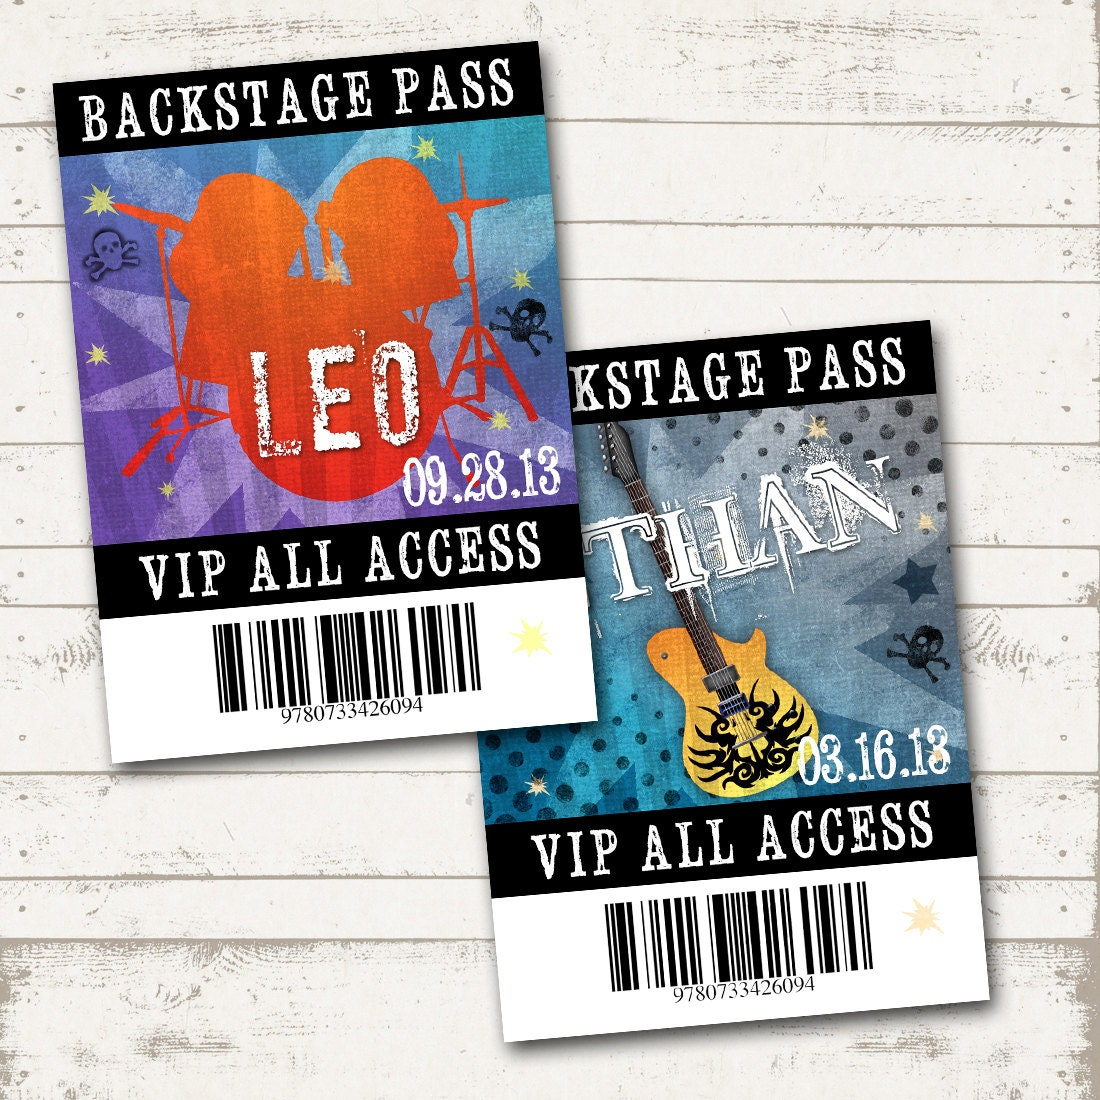 Magnificent Backstage Pass Template Sketch - Example Resume and ...